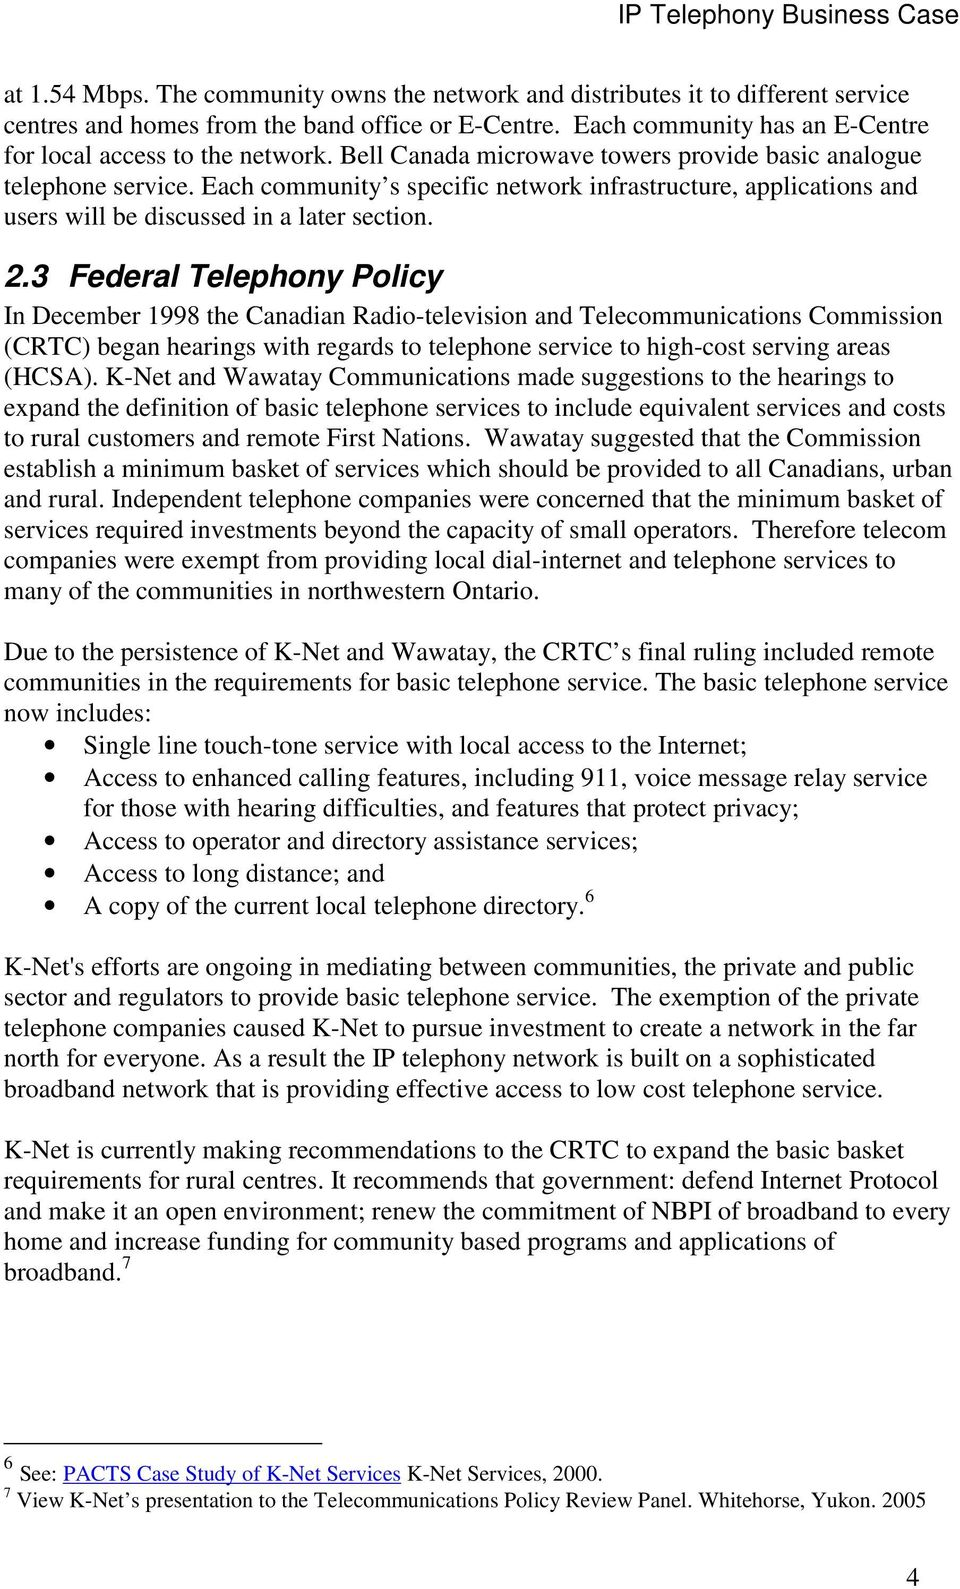 3 Federal Telephony Policy In December 1998 the Canadian Radio-television and Telecommunications Commission (CRTC) began hearings with regards to telephone service to high-cost serving areas (HCSA).